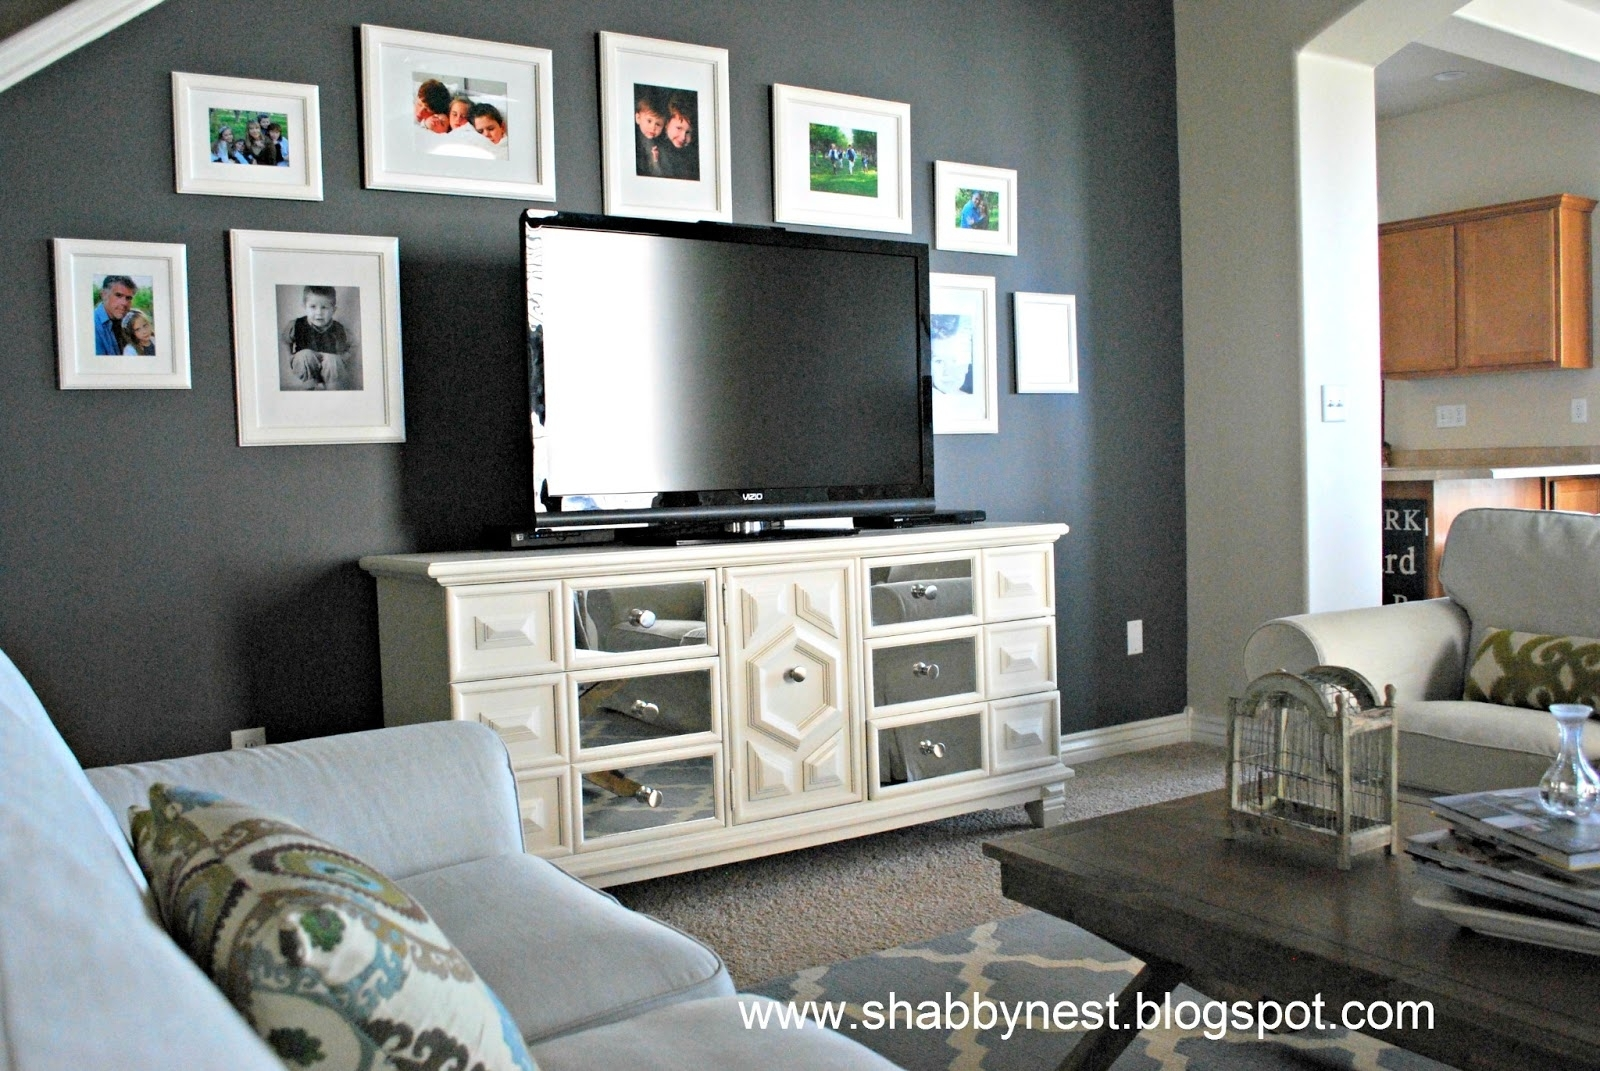 Wall Decor: Awesome Decorating A Living Room With Gray Walls Within Most Up To Date Wall Accents For Small Living Room (View 11 of 15)